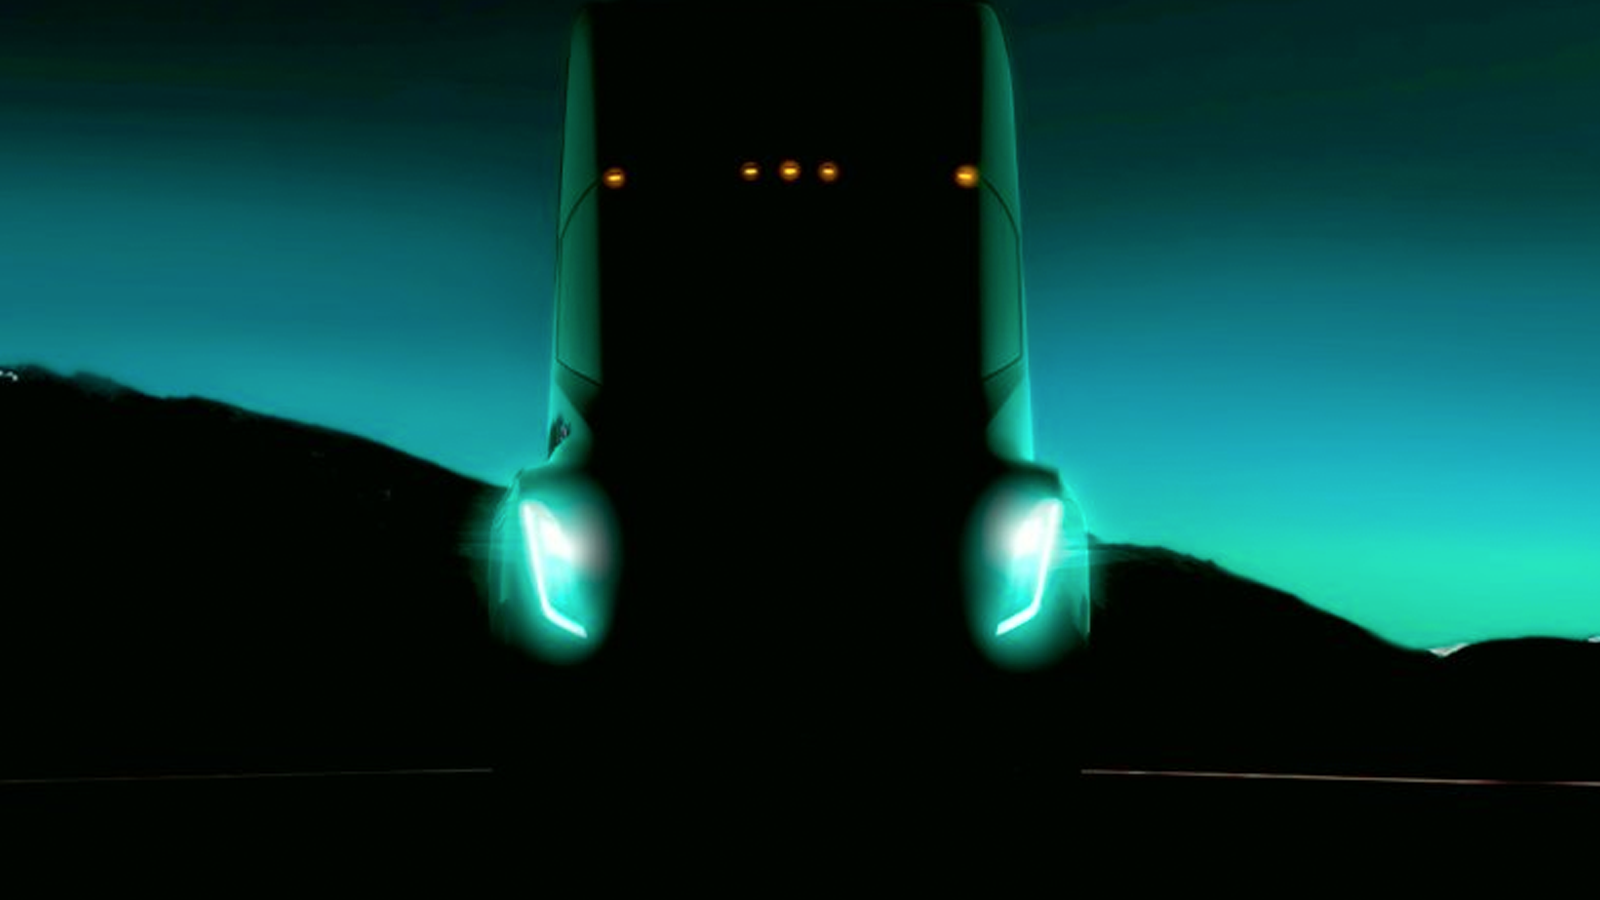 Tesla's upcoming electric semi truck will be able to drive itself